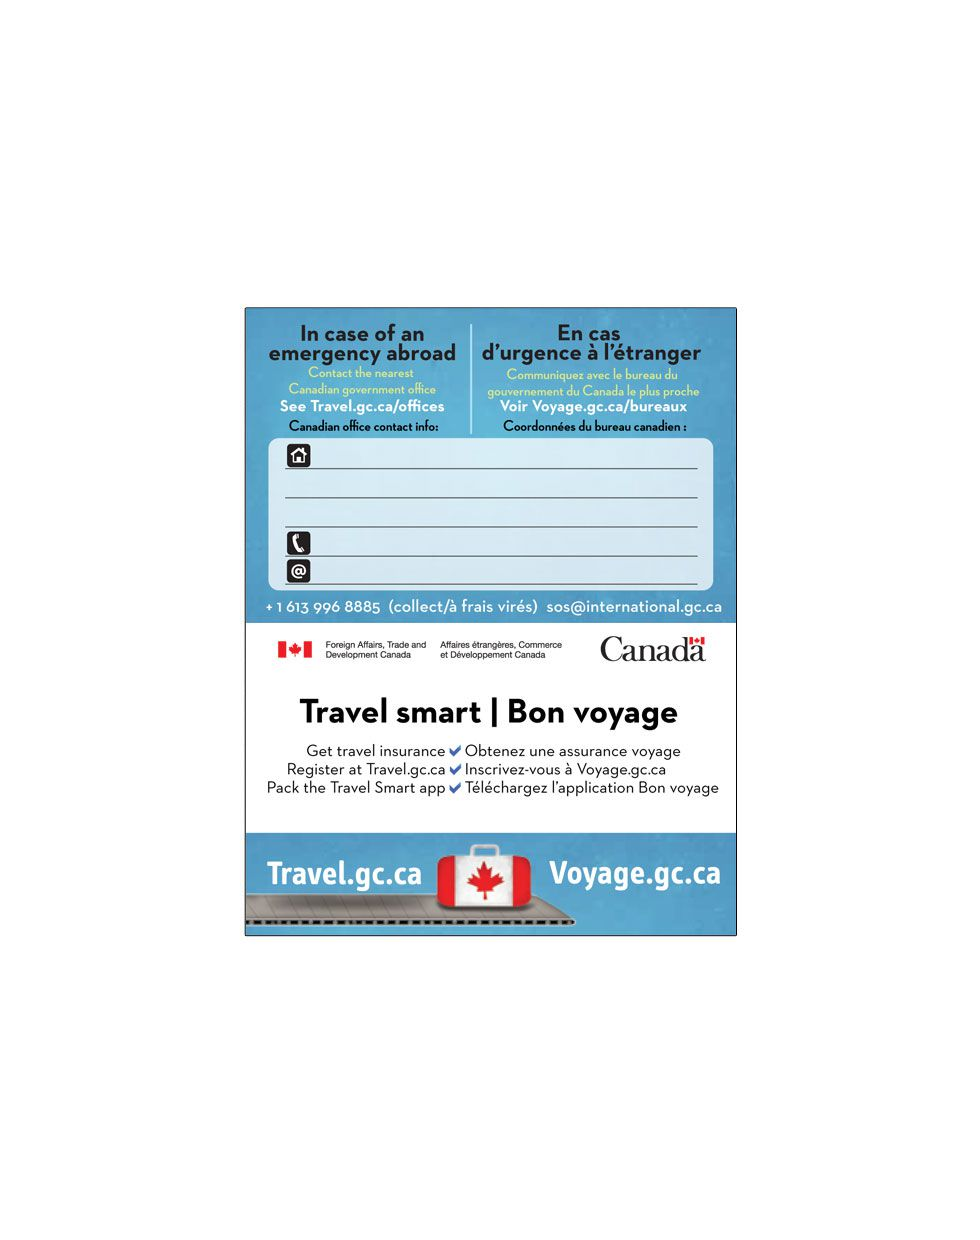 006 Remarkable Travel Emergency Contact Card Template Sample Full